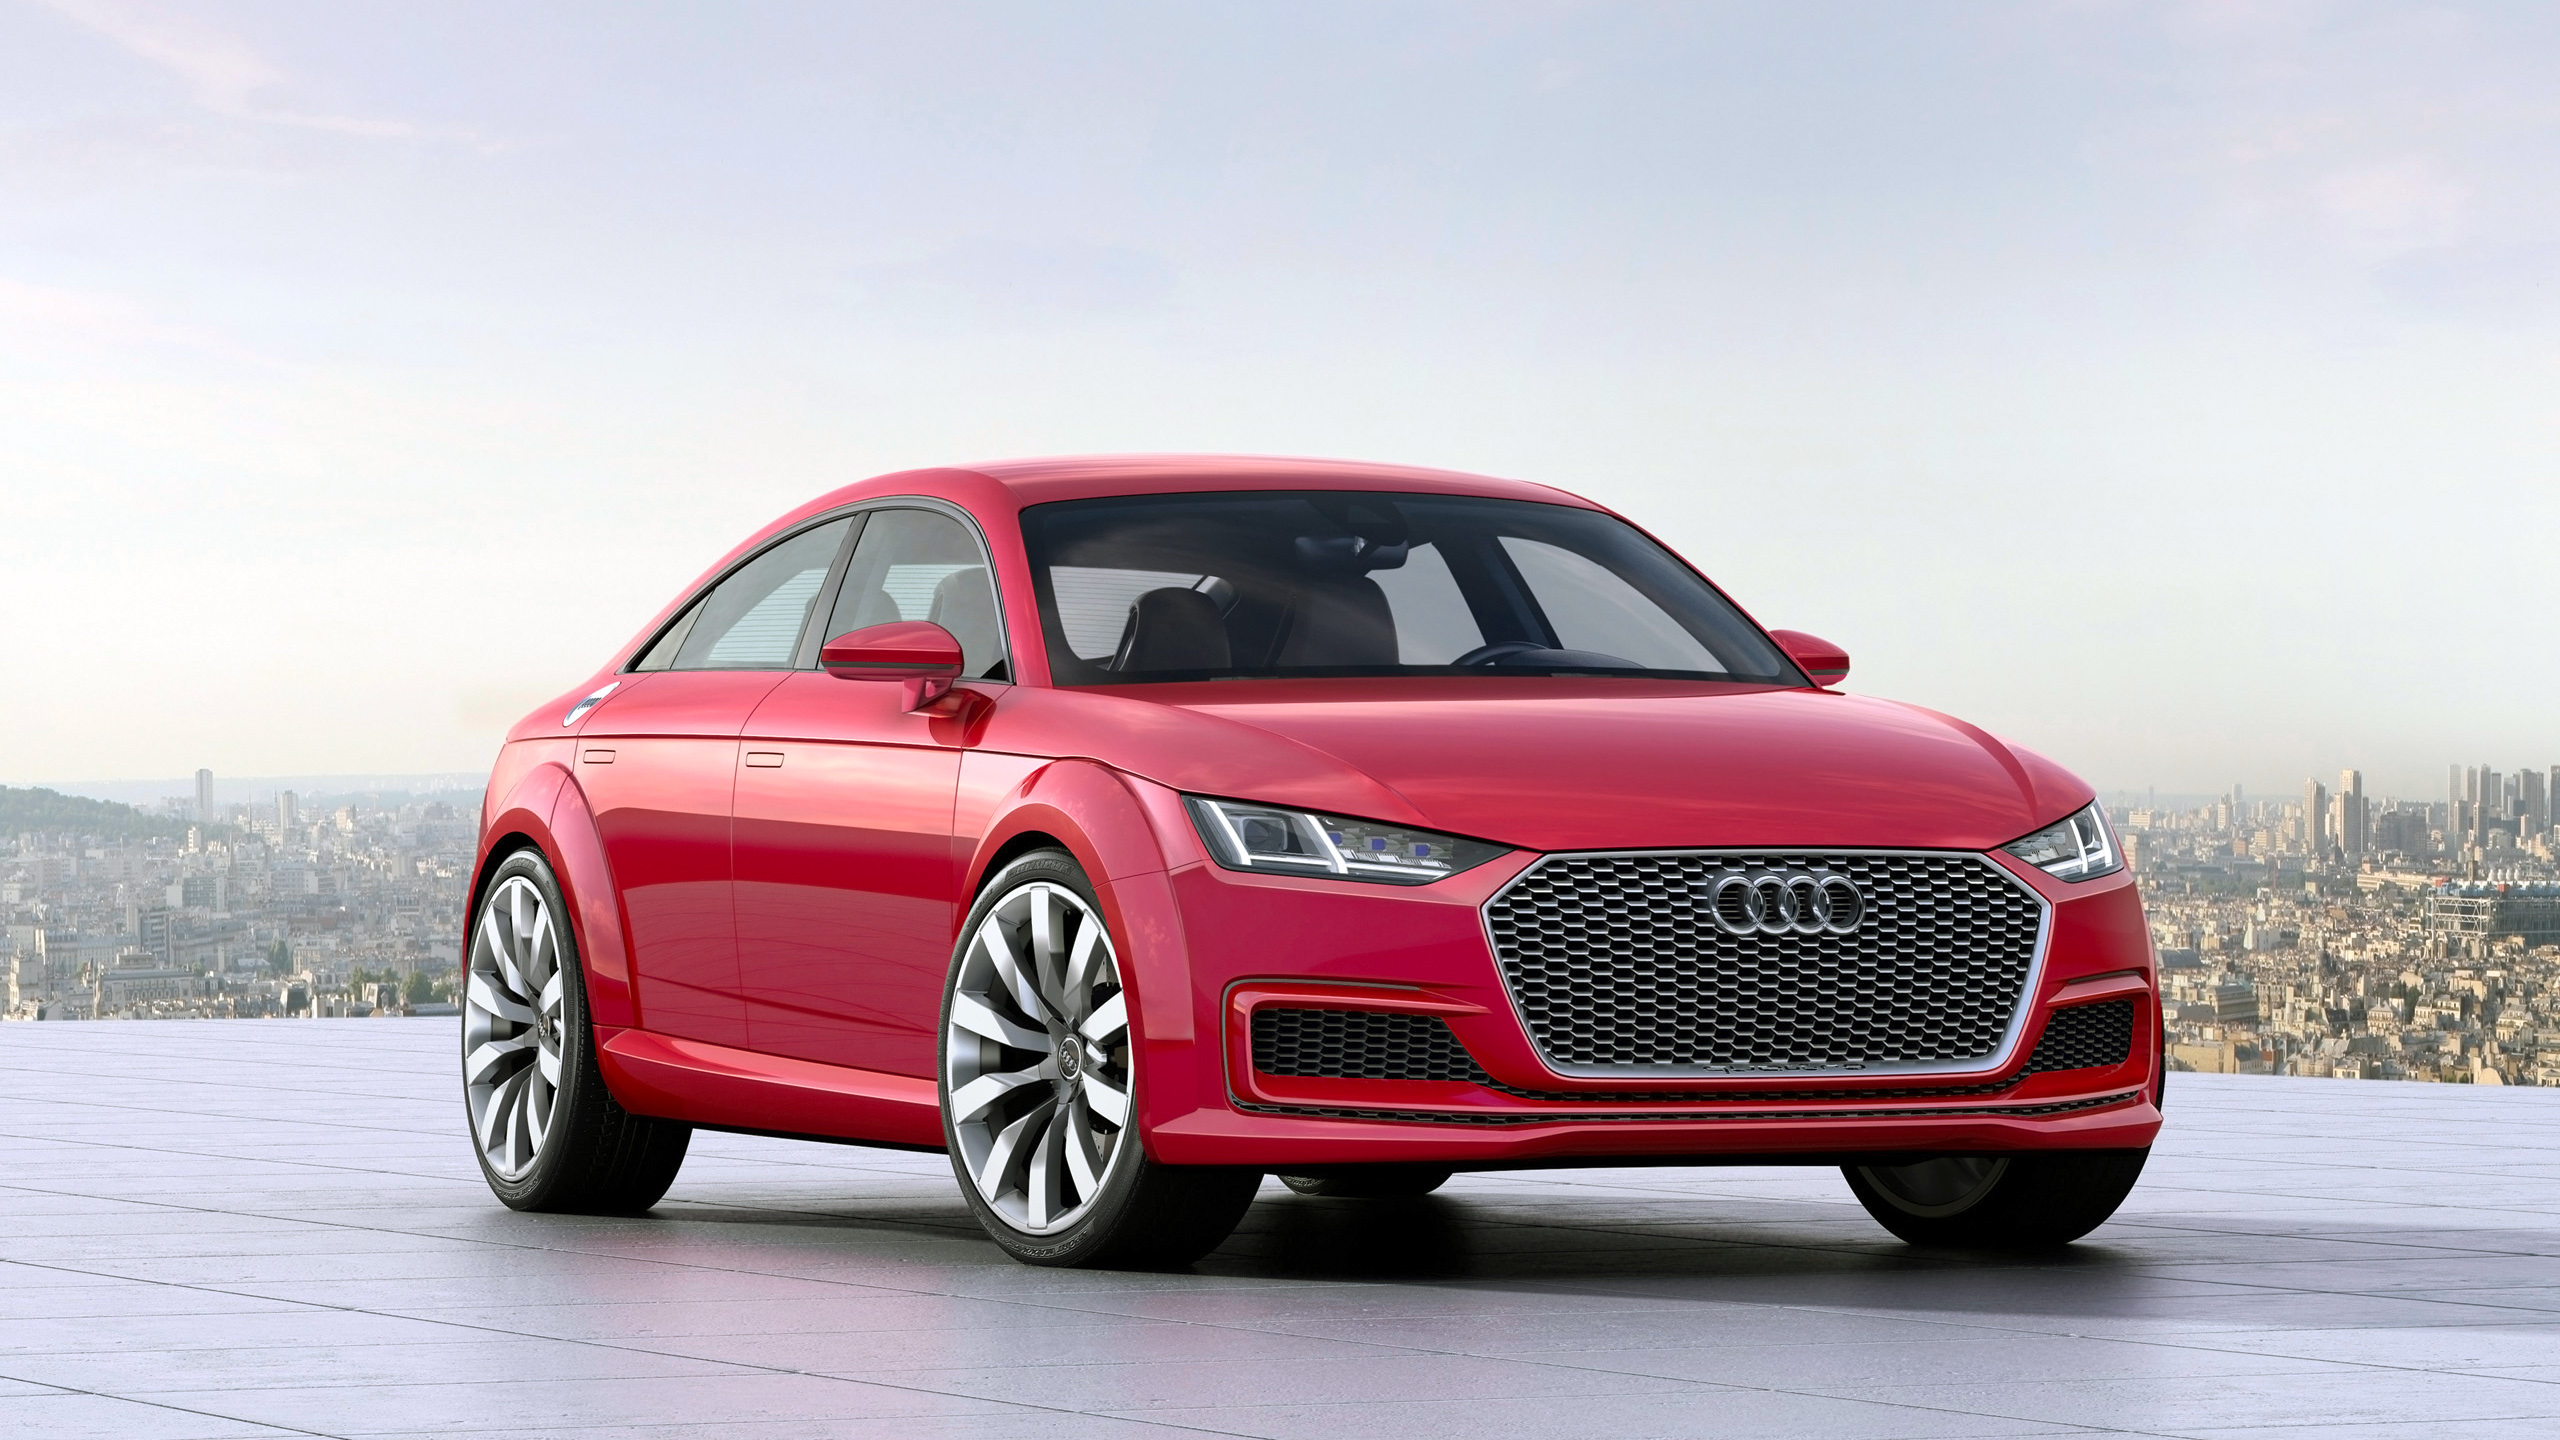 2014 Audi TT Sportback Concept Wallpaper | HD Car Wallpapers